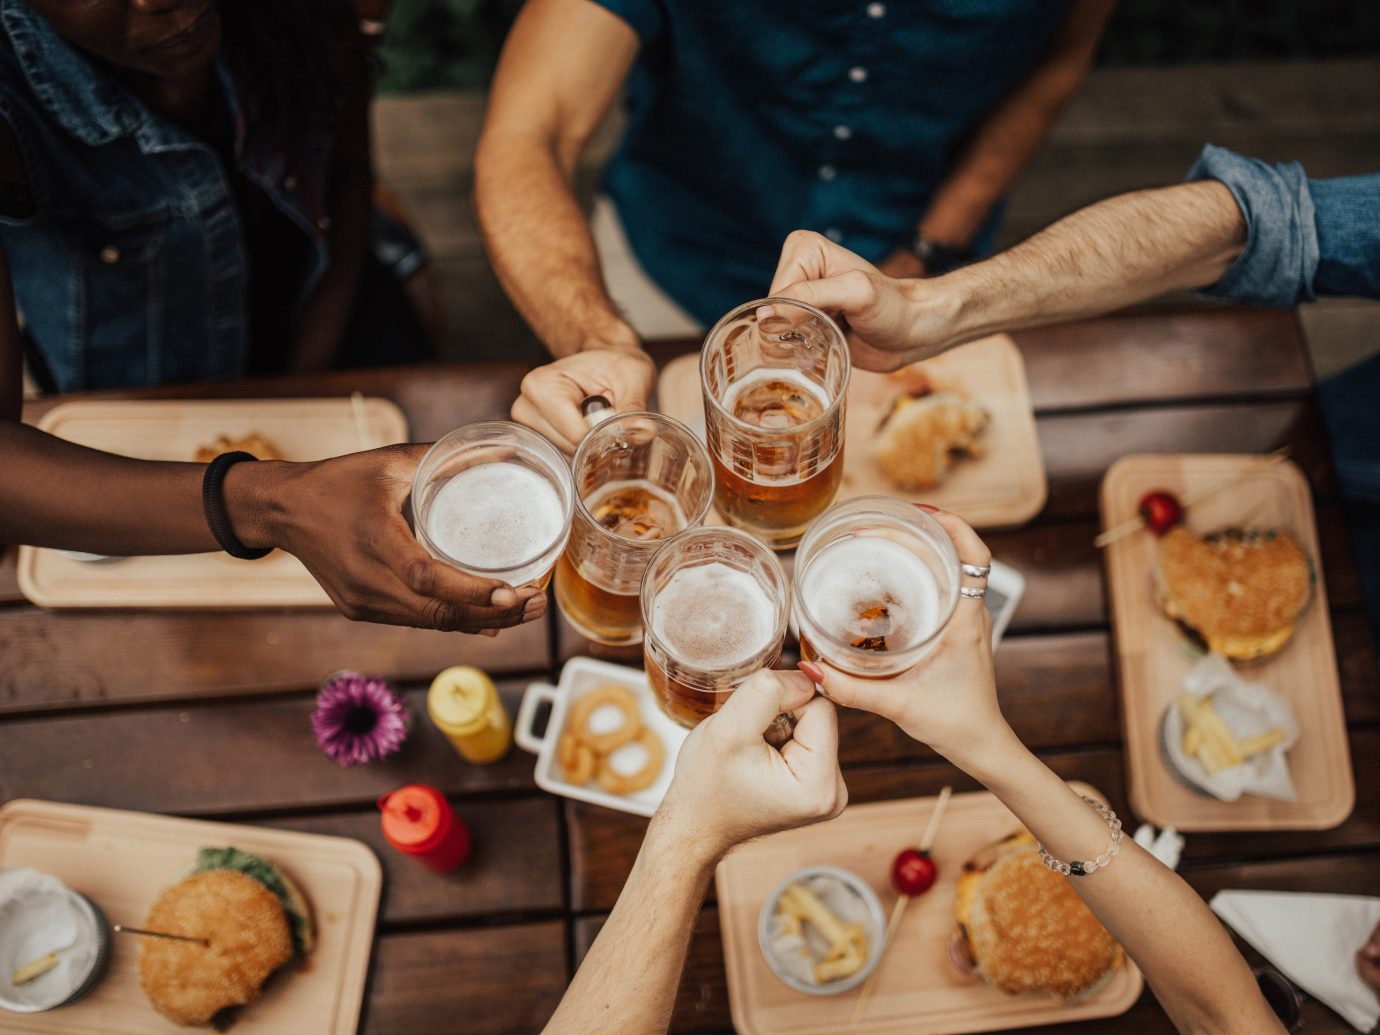 Group of friends toasting their beers with burgers on the table